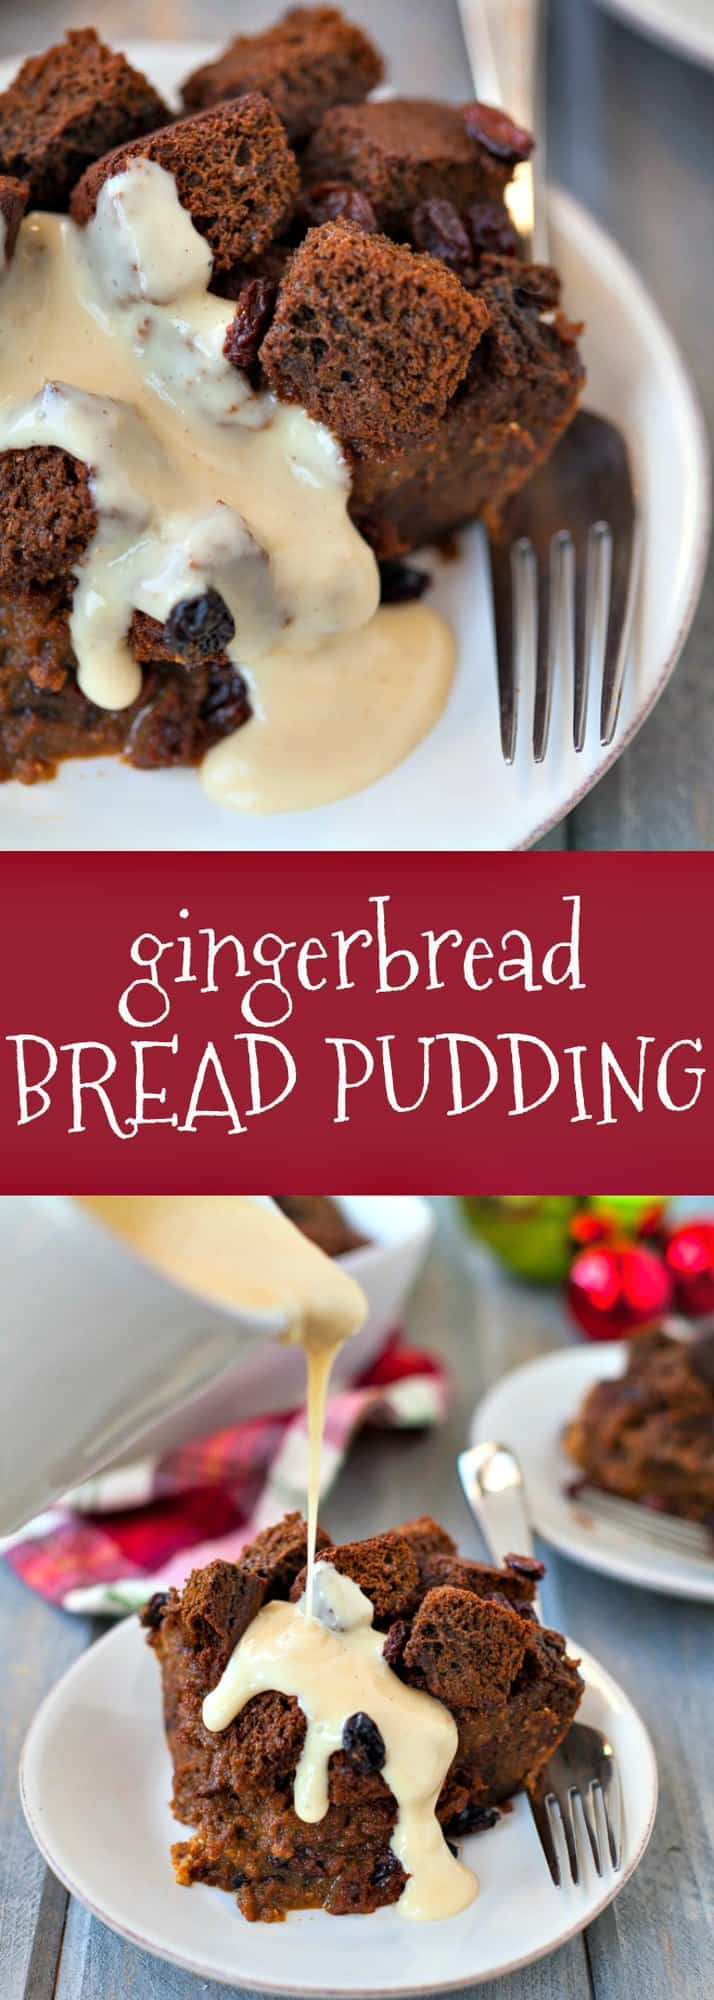 A holiday dessert worth cheering for! This gingerbread bread pudding is packed with whole grain goodness, sweet raisins and gingerbread spices, and topped off with a warm eggnog sauce.